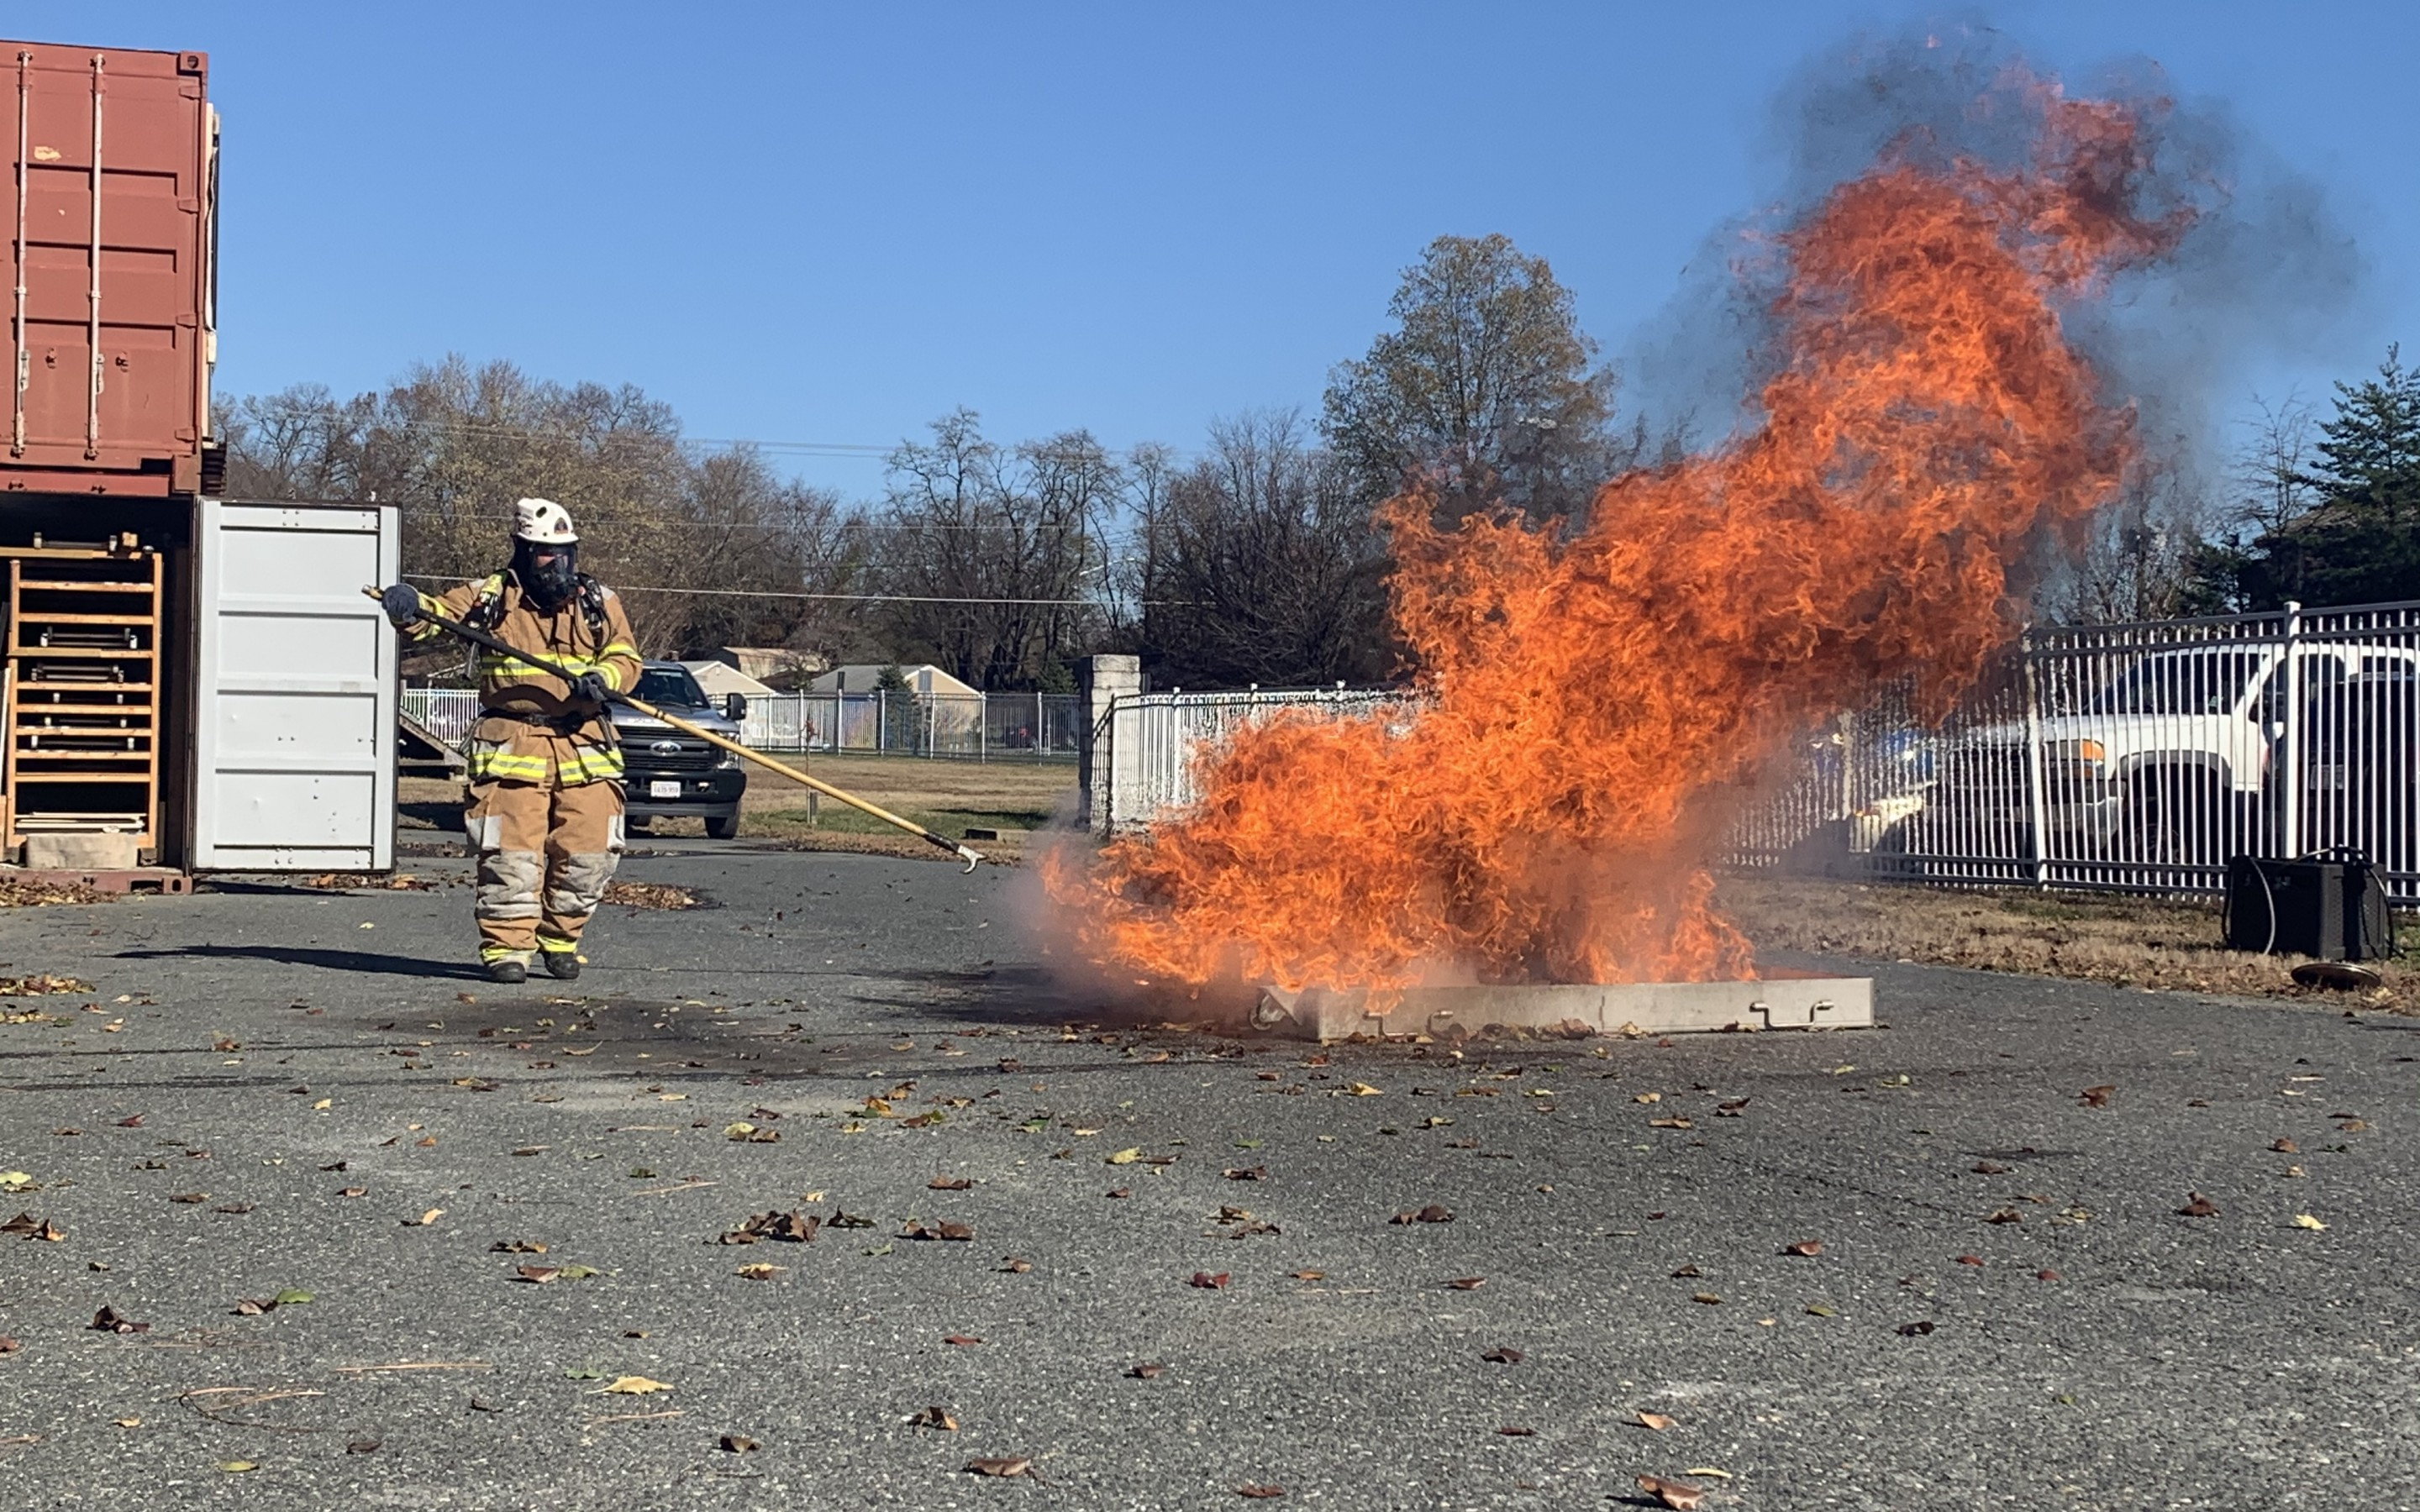 VIDEO:  Frying a turkey?  Stafford Fire and Rescue shows what can happen if you're not super careful